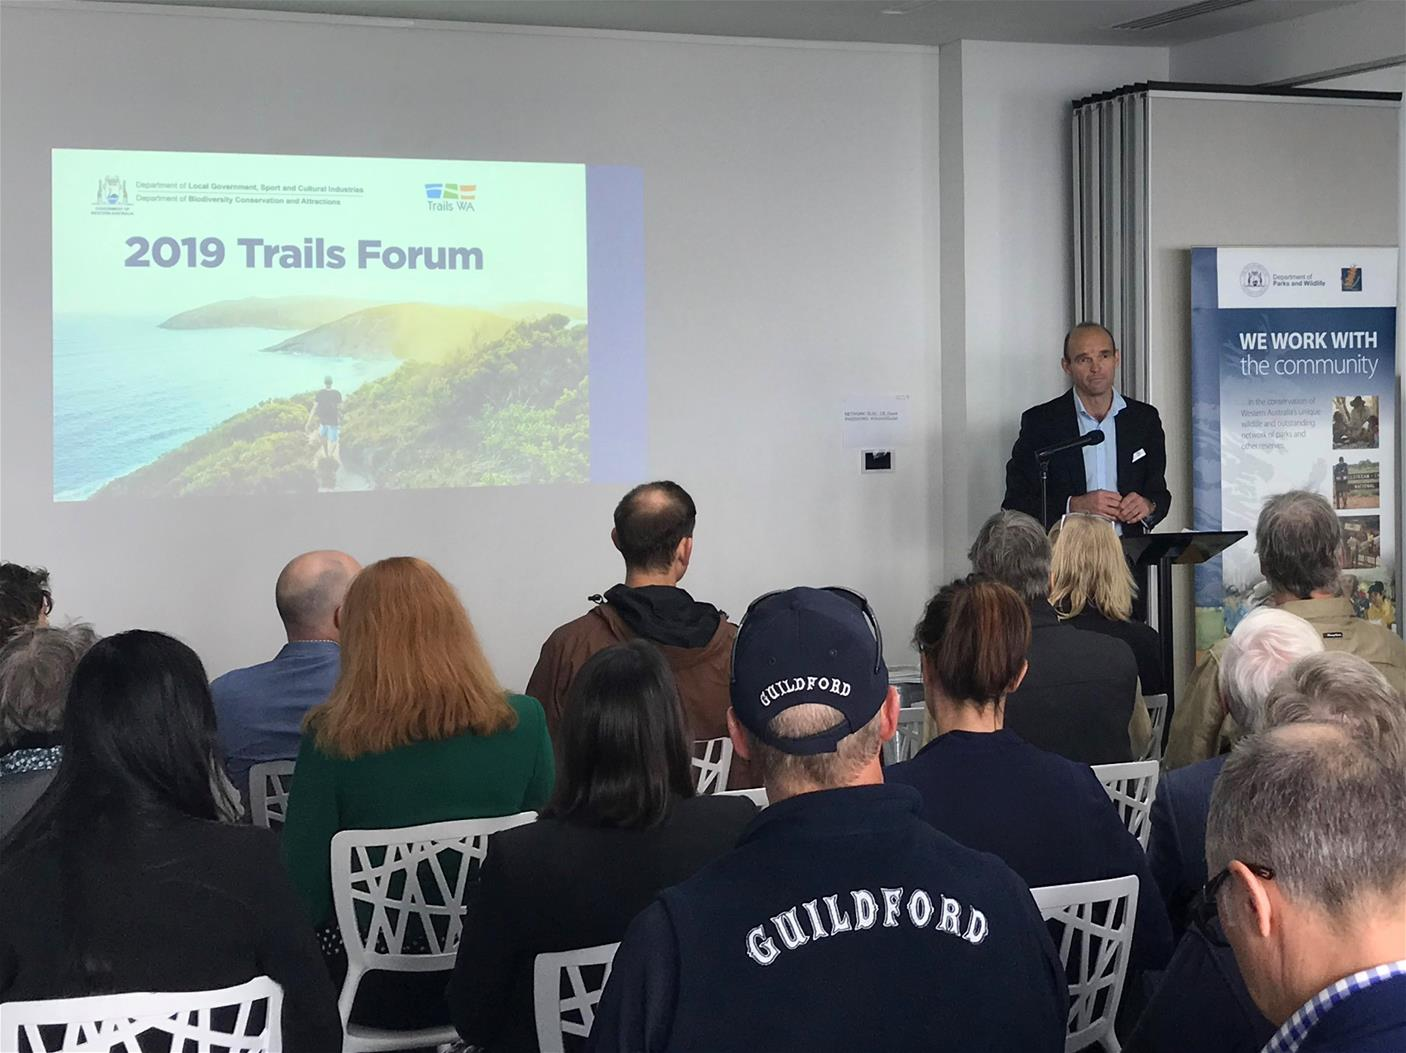 Tim Swart at the 2019 Trails Forum